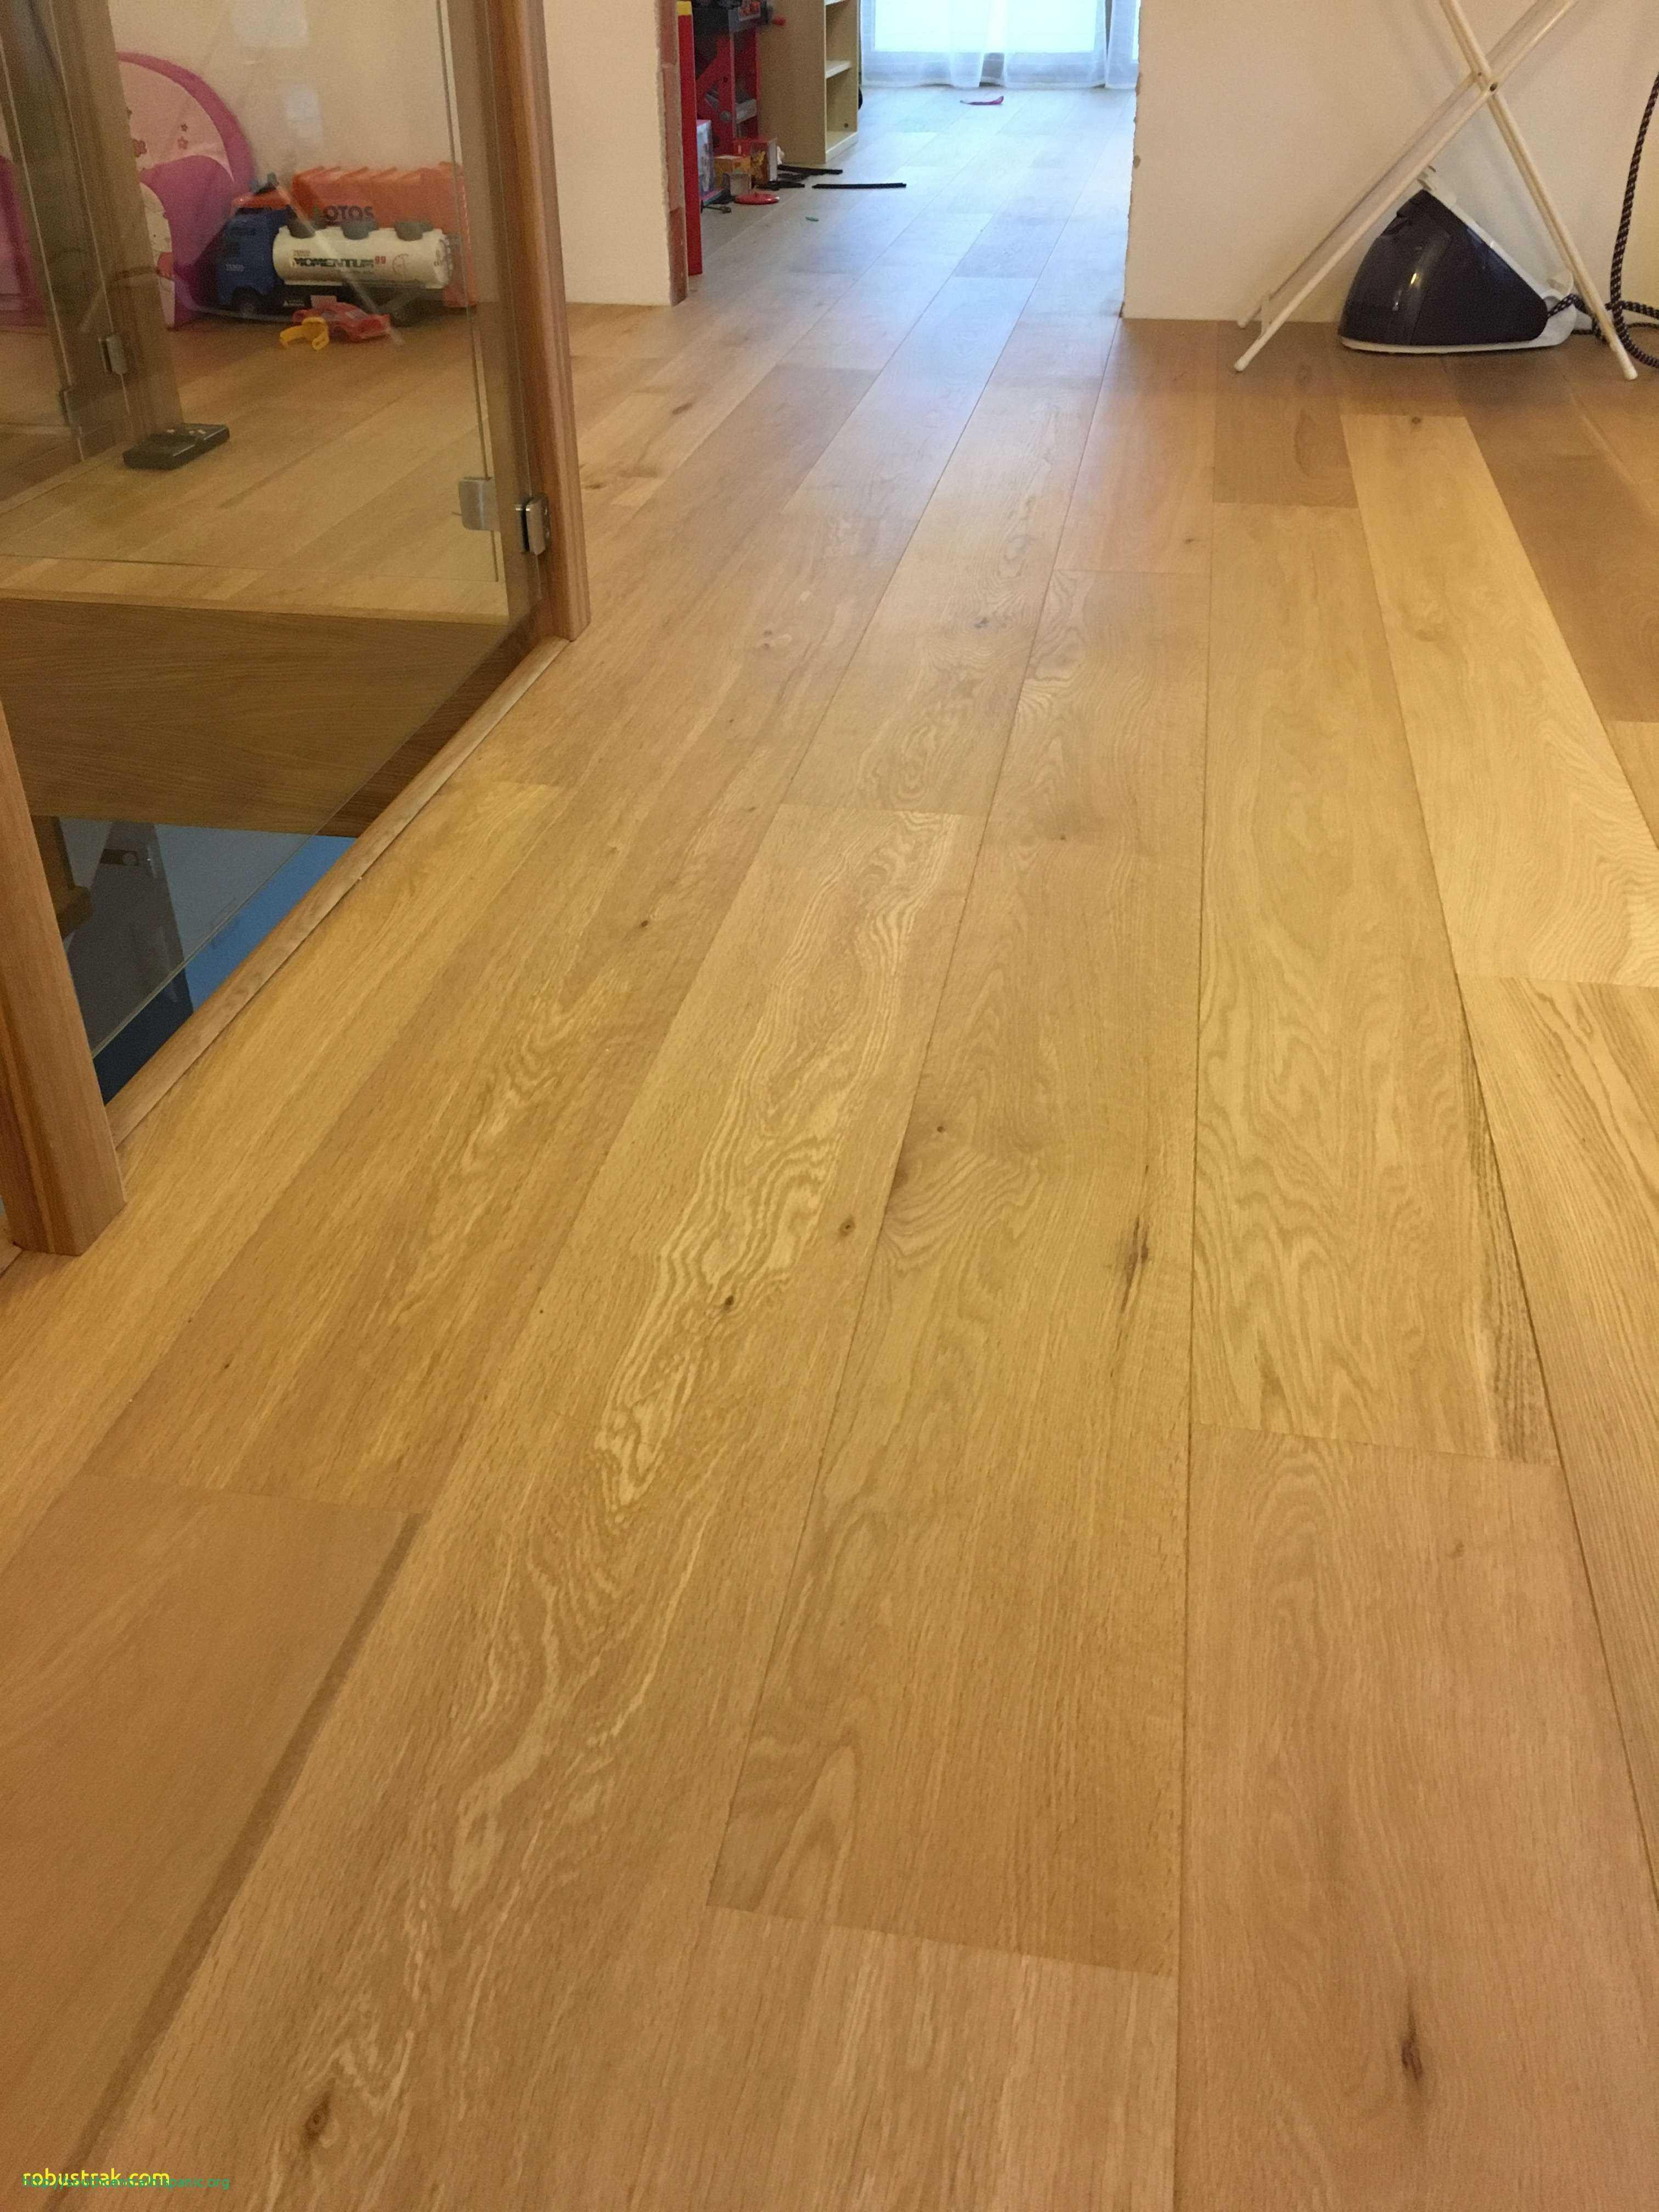 mirage engineered hardwood flooring prices of new different styles hardwood flooring concept in best place to buy laminate flooring inspirant laminate flooring looks like wood new naturalny dub od